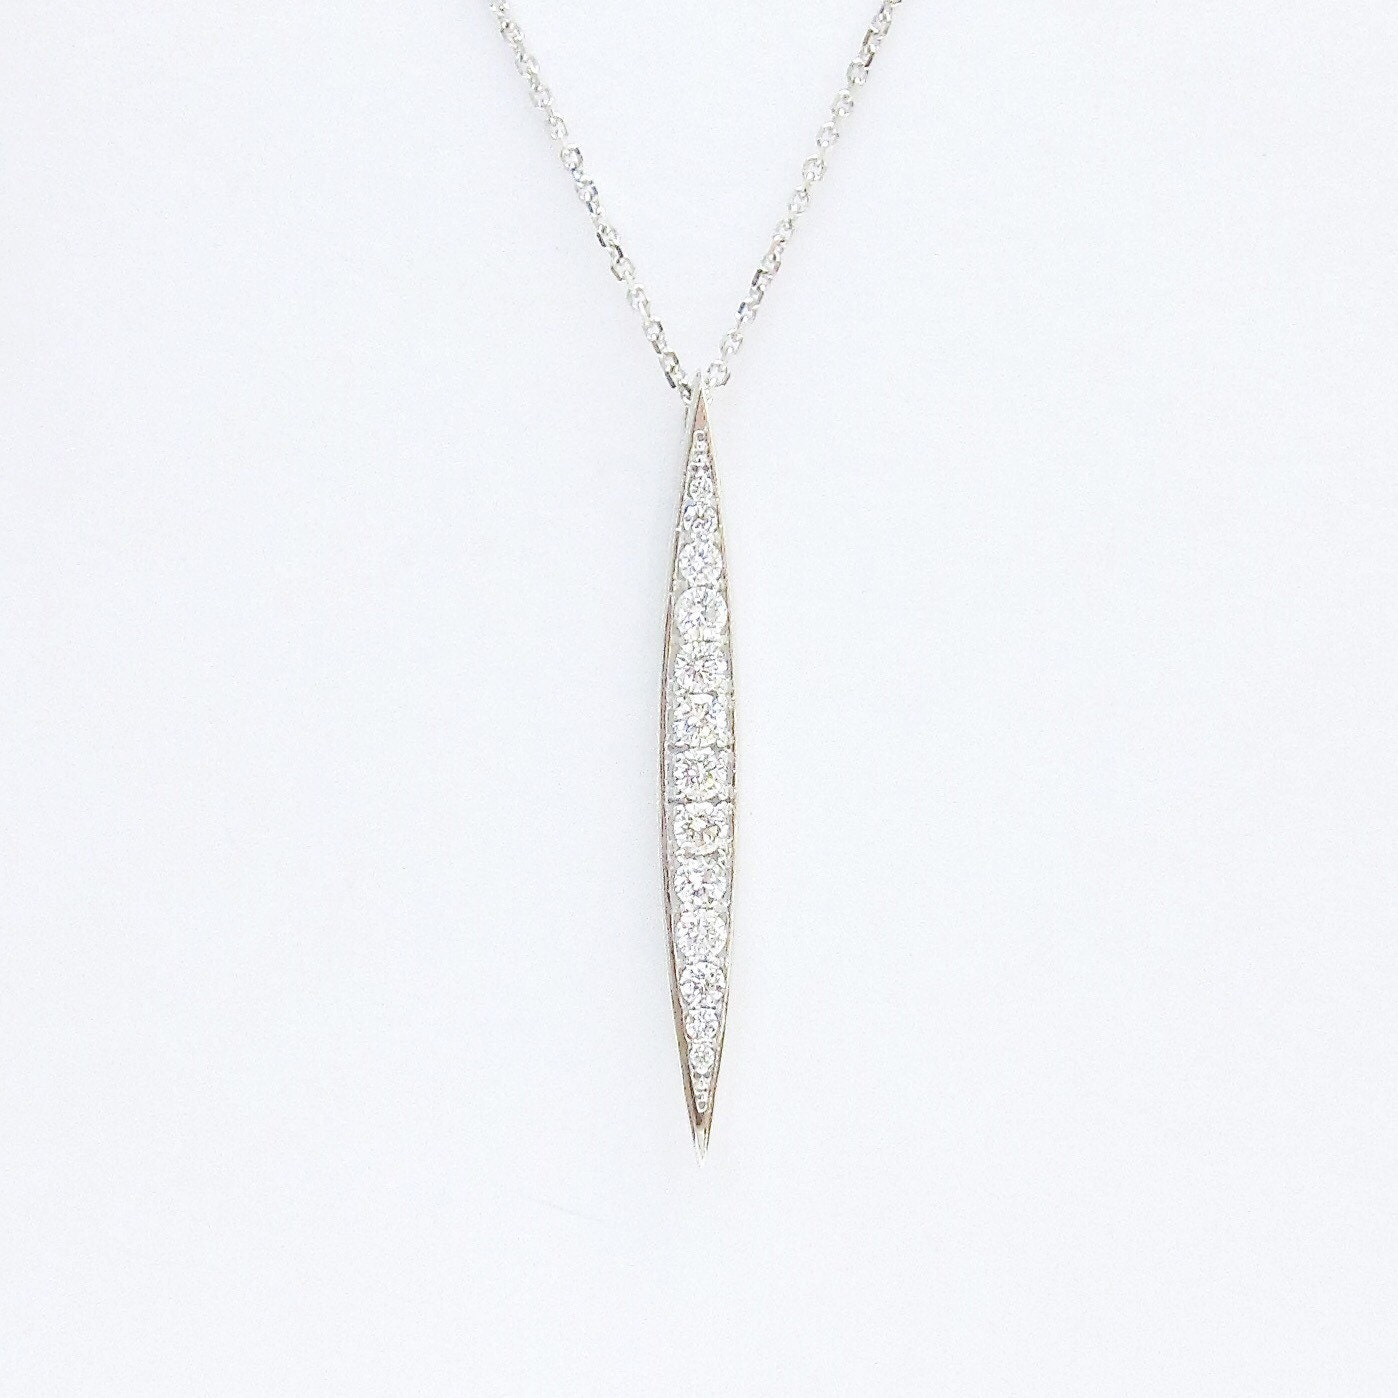 ef diamond pendant collection bar gold rose vertical necklace product